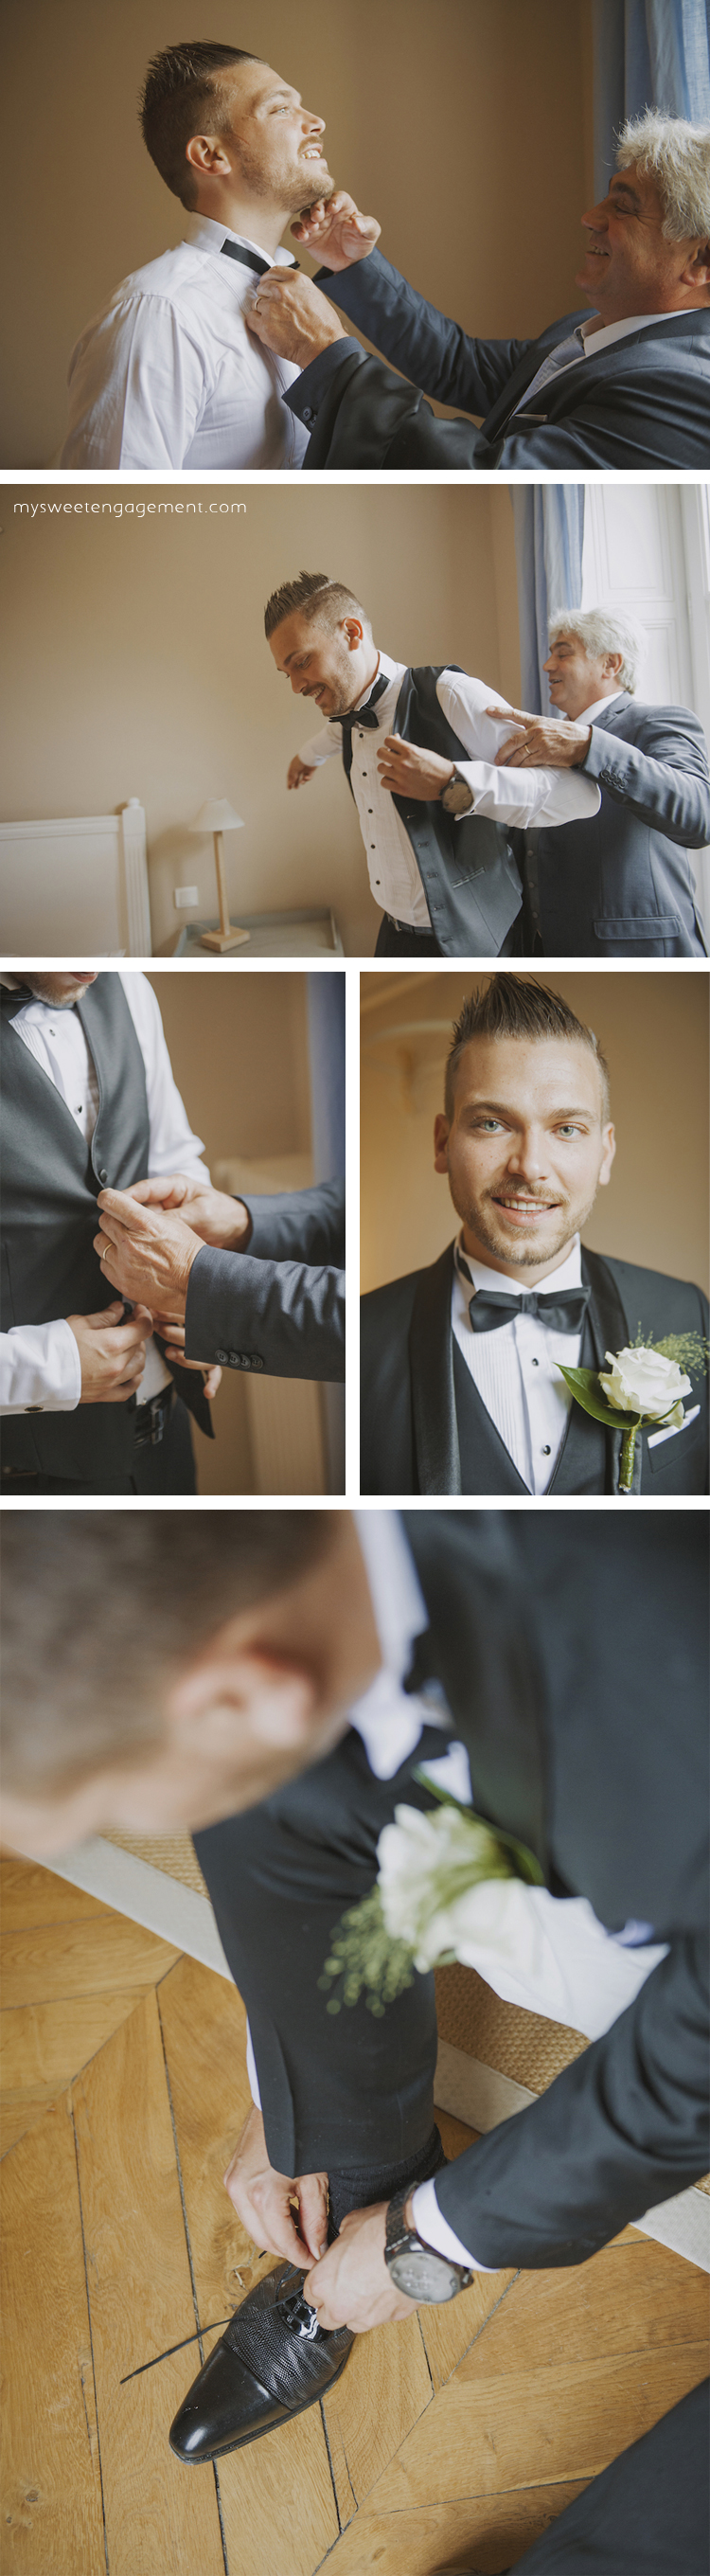 groom and his dad getting ready - bow tie - boutonniere - man vest and suit - groom's shoes - wedding blog - my sweet engagement